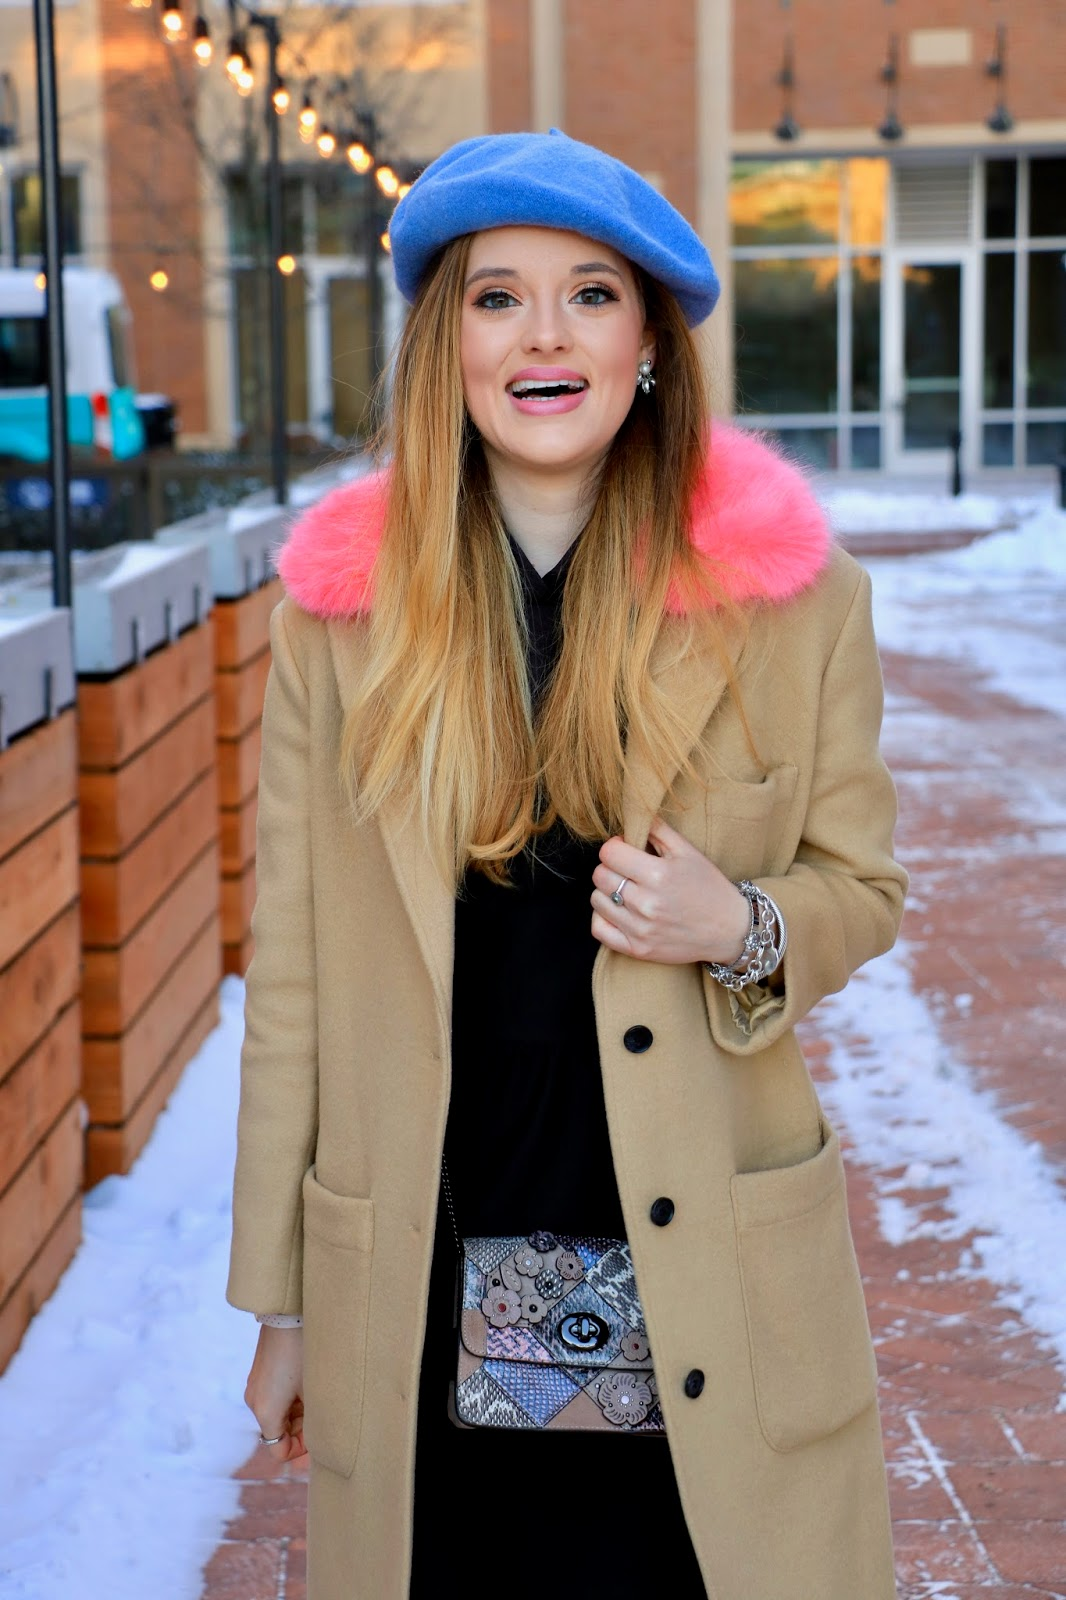 Nyc fashion blogger Kathleen Harper showing how to wear a beret